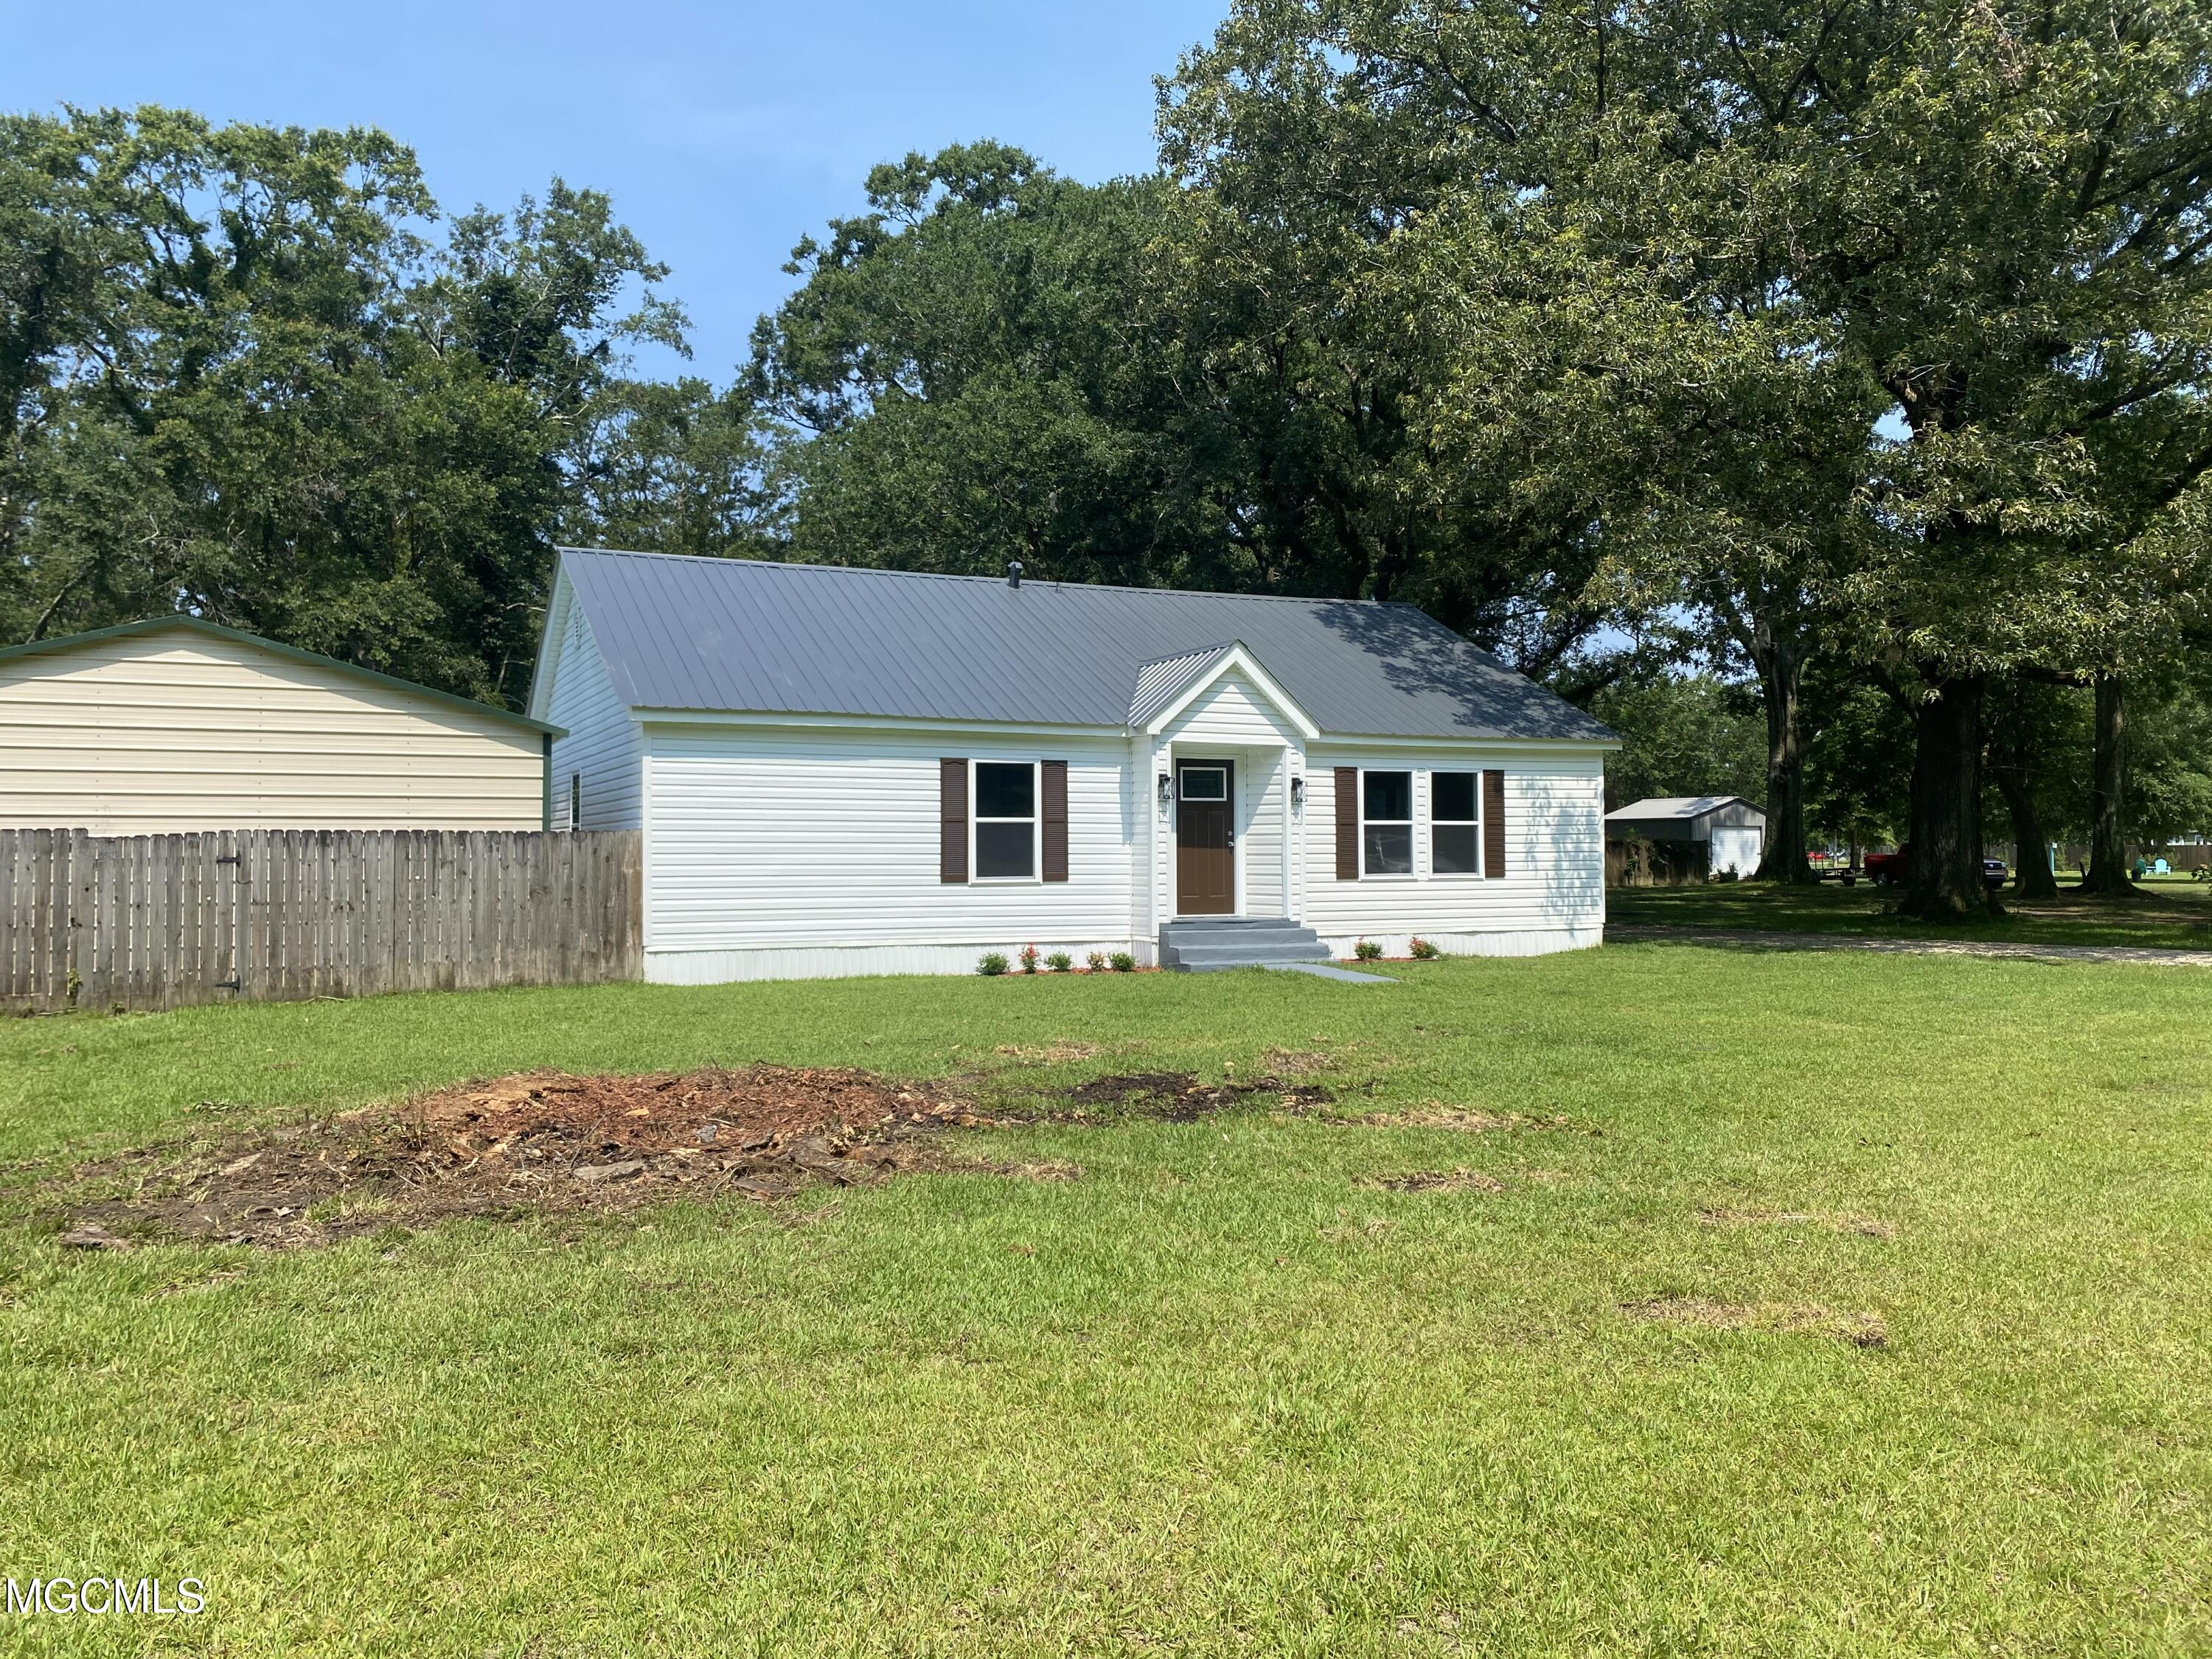 Completely updated 3 bedroom 2 bath home on just under an acre in great location.  Close to the school and downtown Hurley.  Metal shop and barn/shed in back will offer plenty of storage space and beautiful shaded lot.